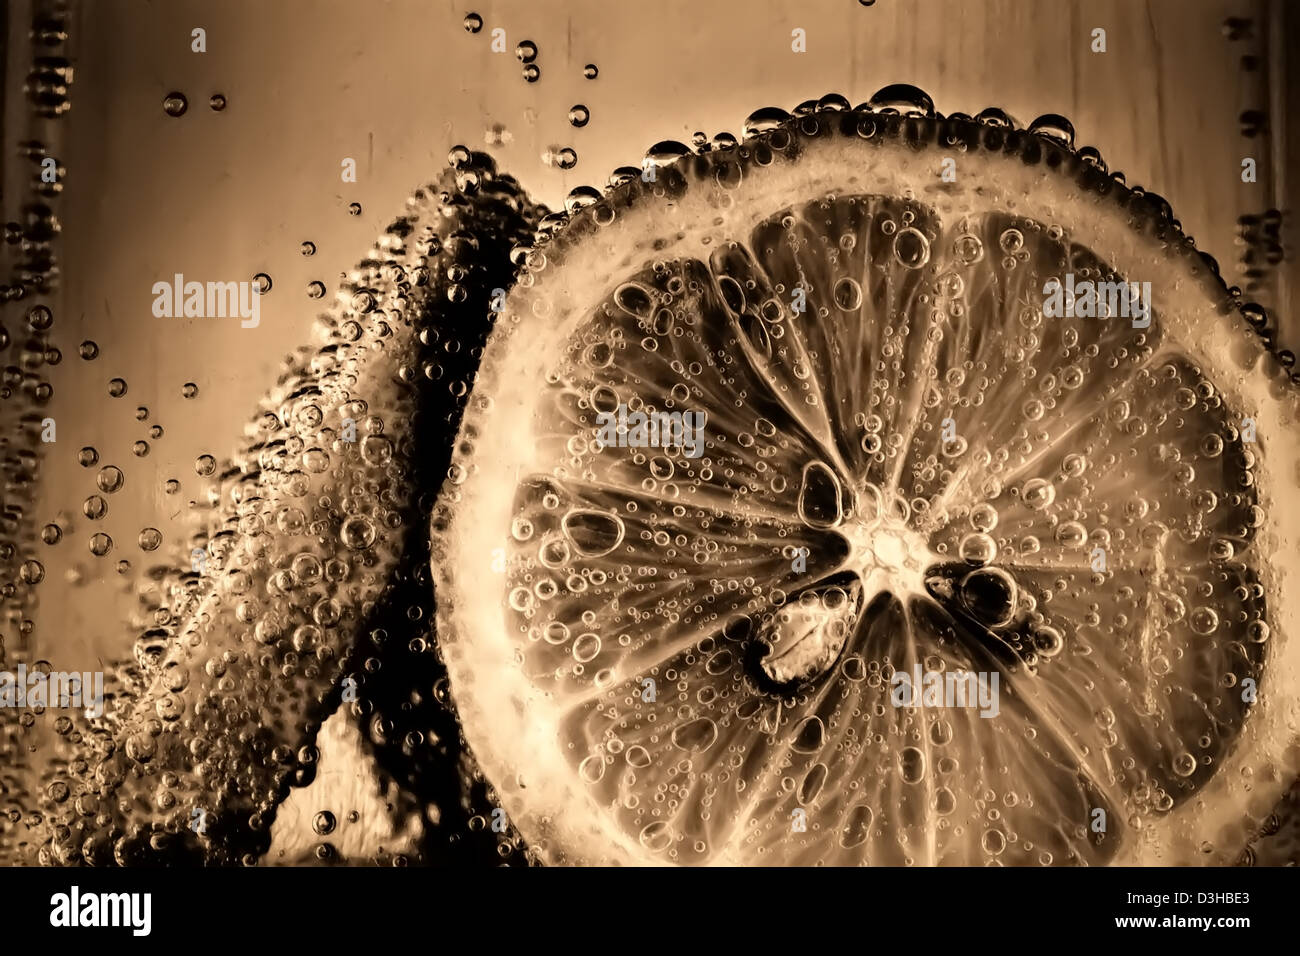 Lemon slices in fizzy water old style Stock Photo